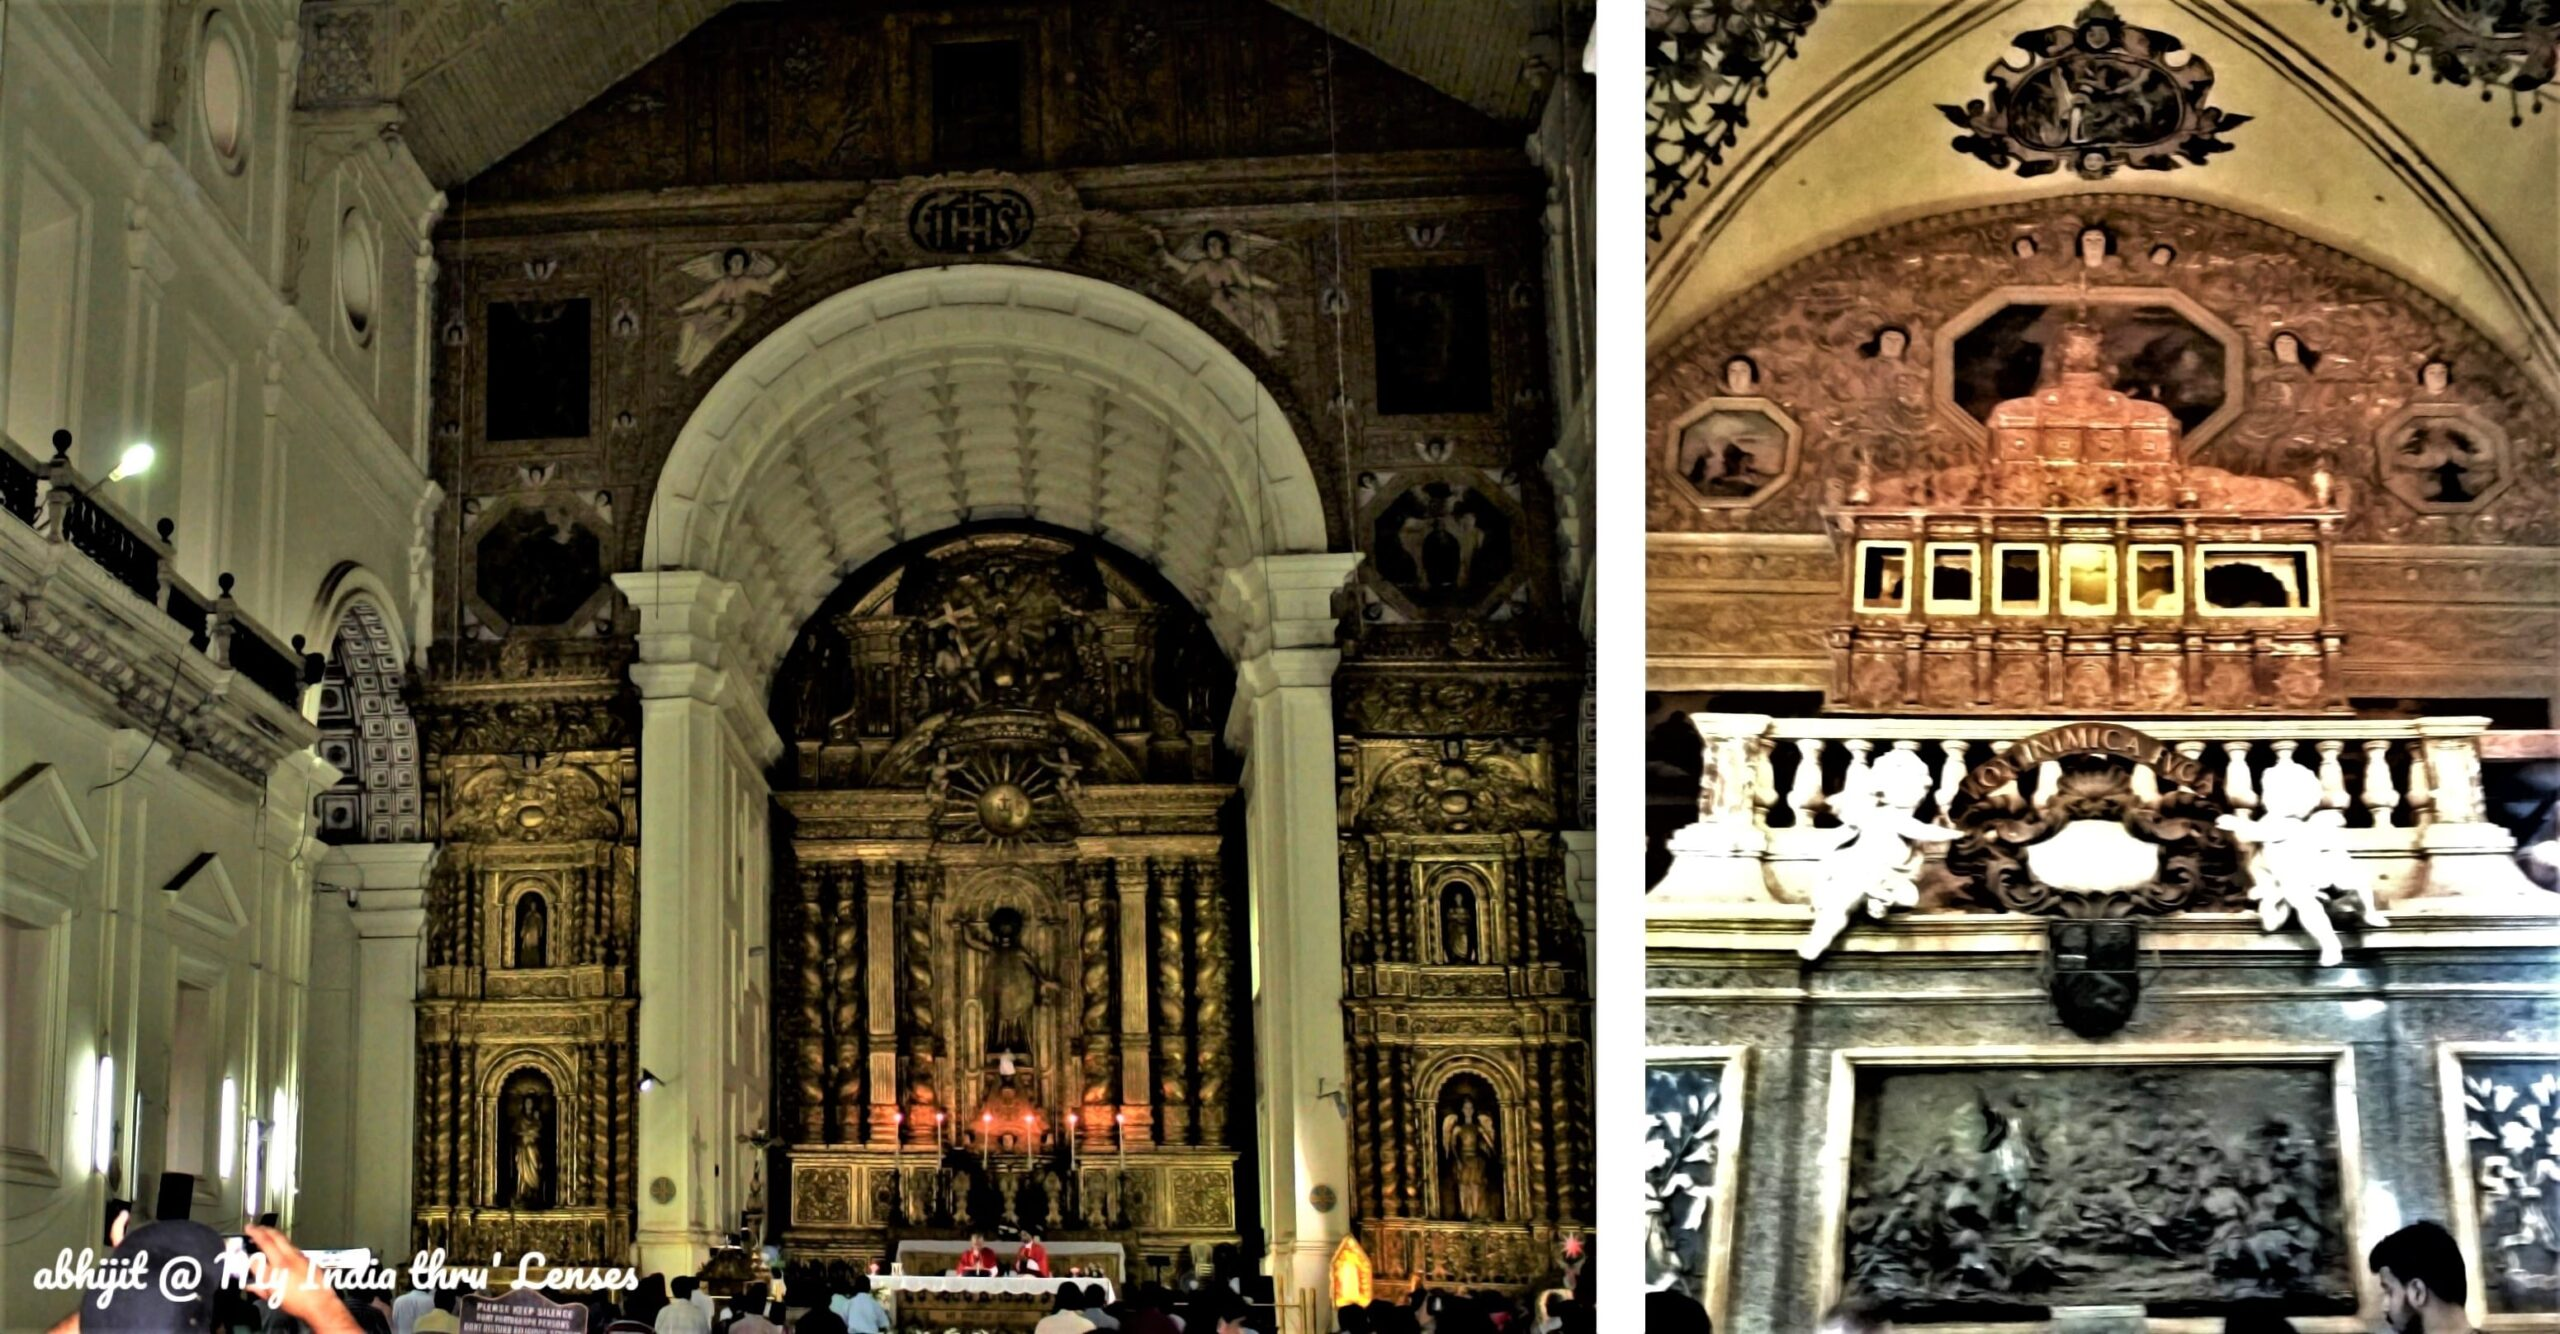 Left: Interiors of the Basilica of Bom Jesus   Right: The mummified body of St. Francis Xavier kept in a glass coffin within a silver casket on the top of a chapel